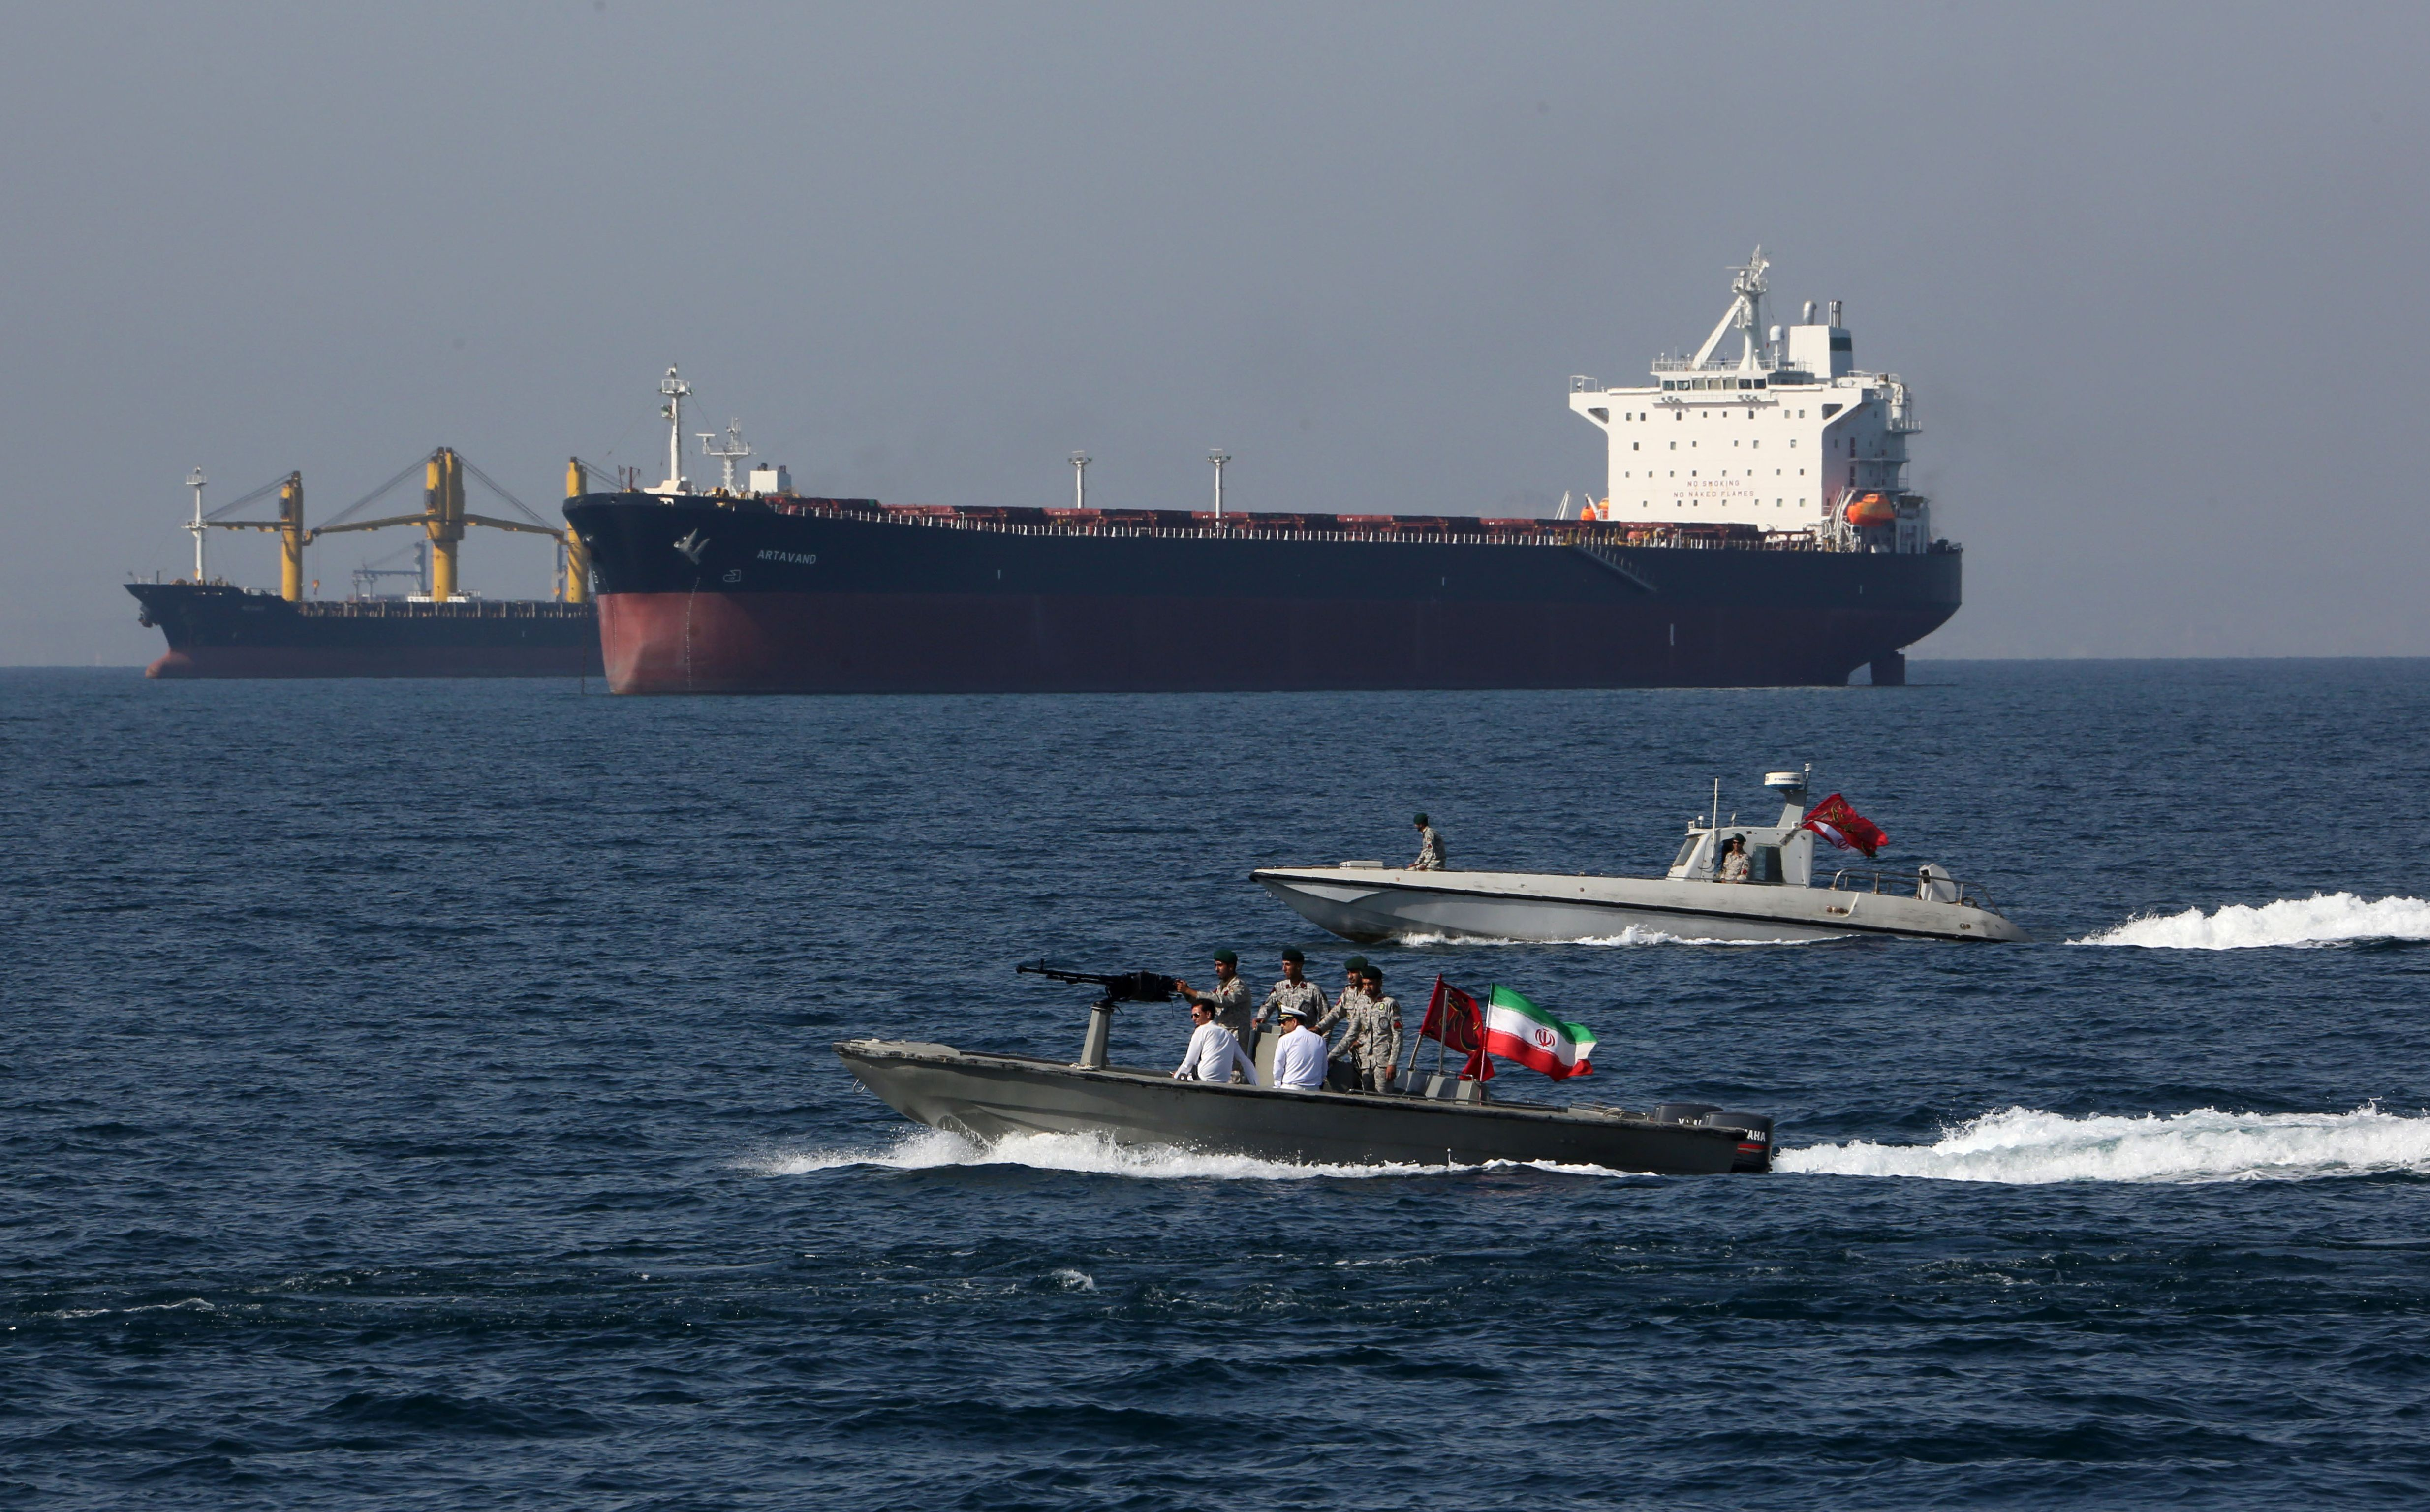 The US has a risky new plan to protect oil tankers from Iranian attacks